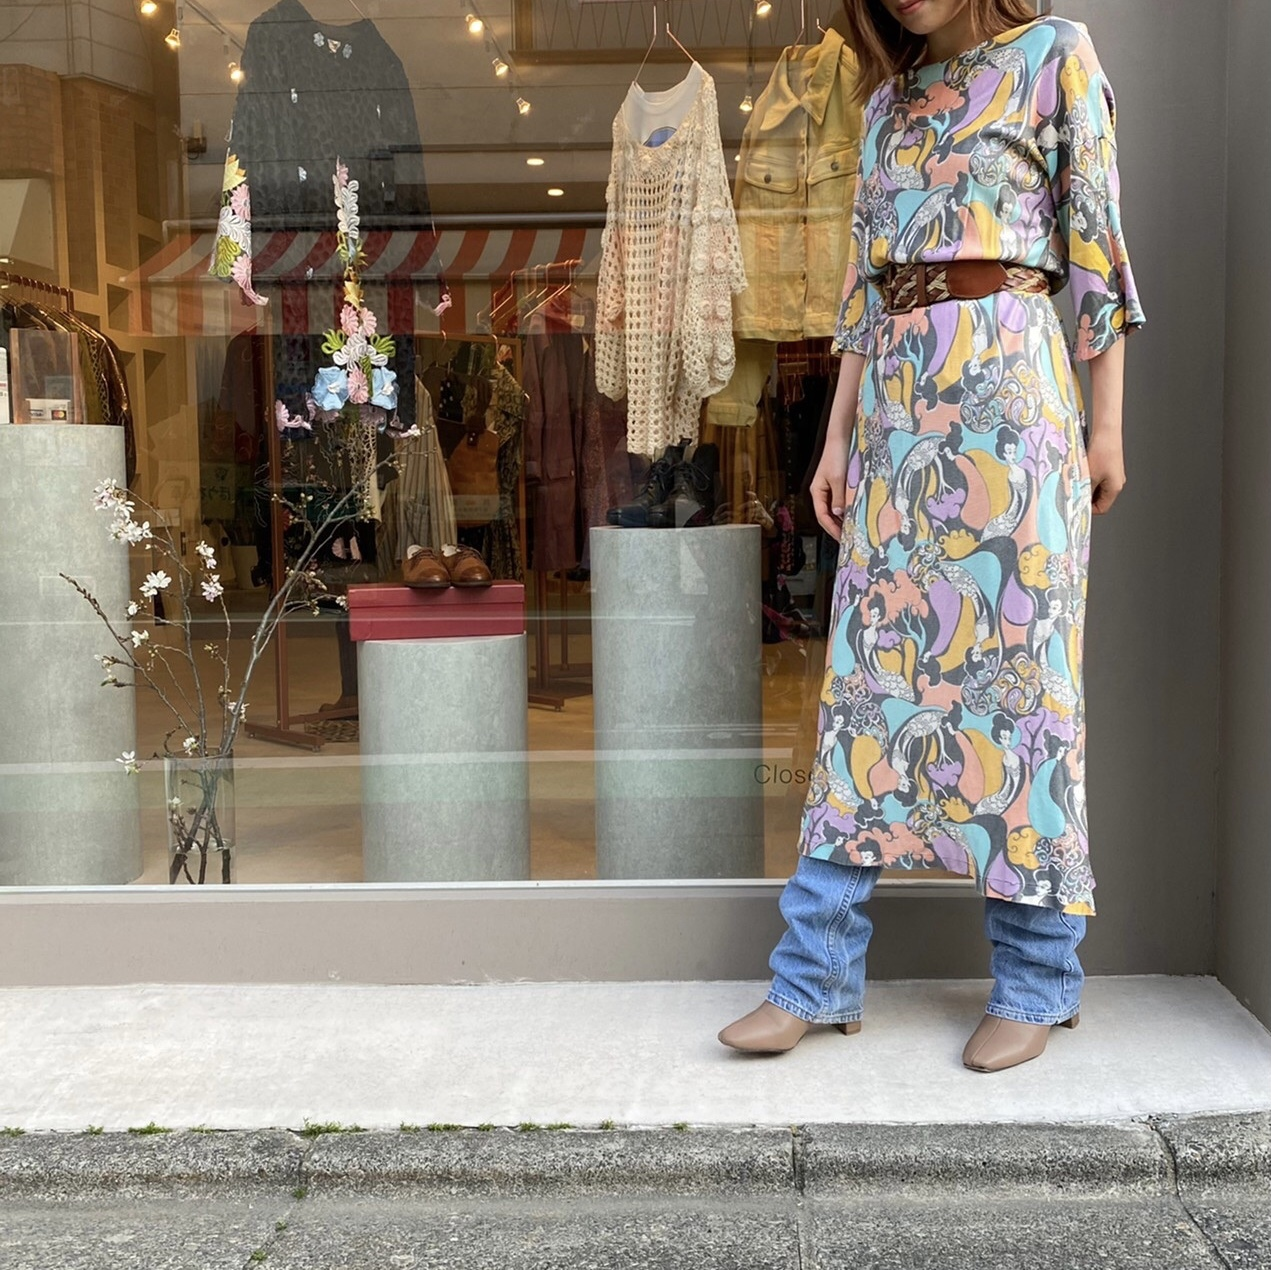 ◼︎70s vintage psychedelic print dress from U.S.A.◼︎